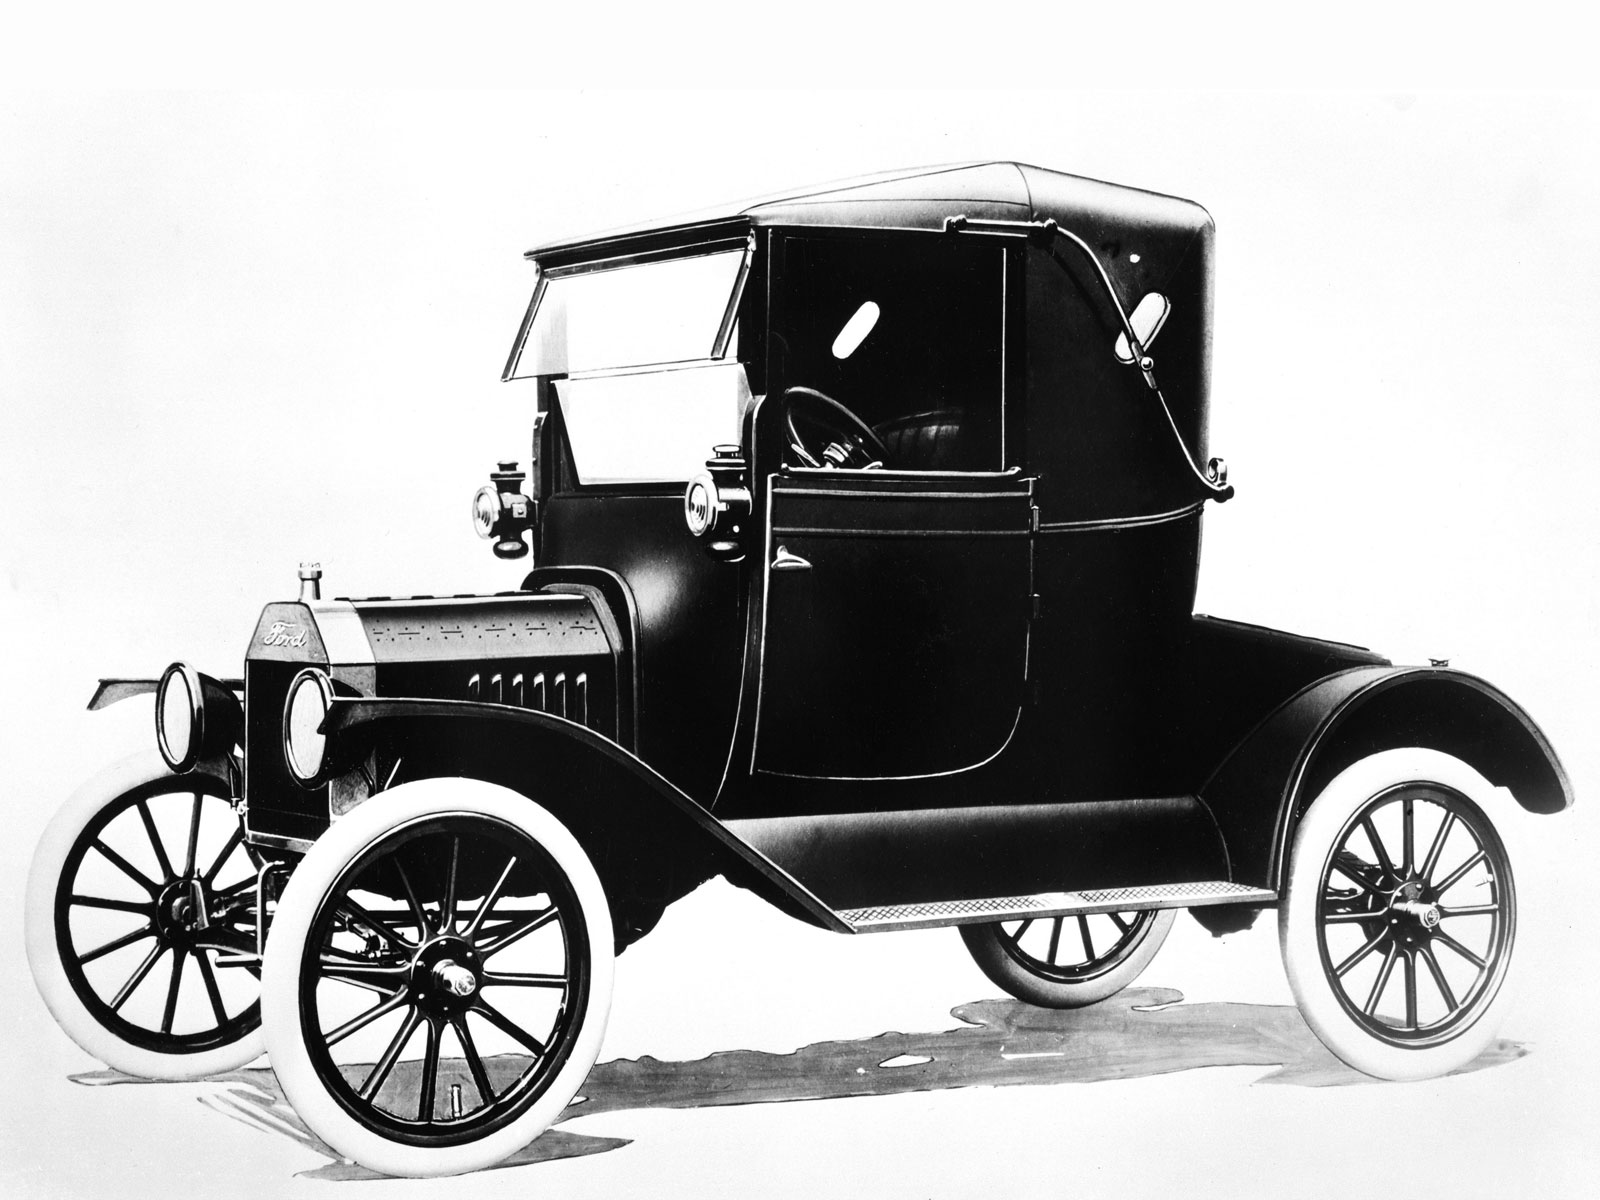 ford model t related - photo #3